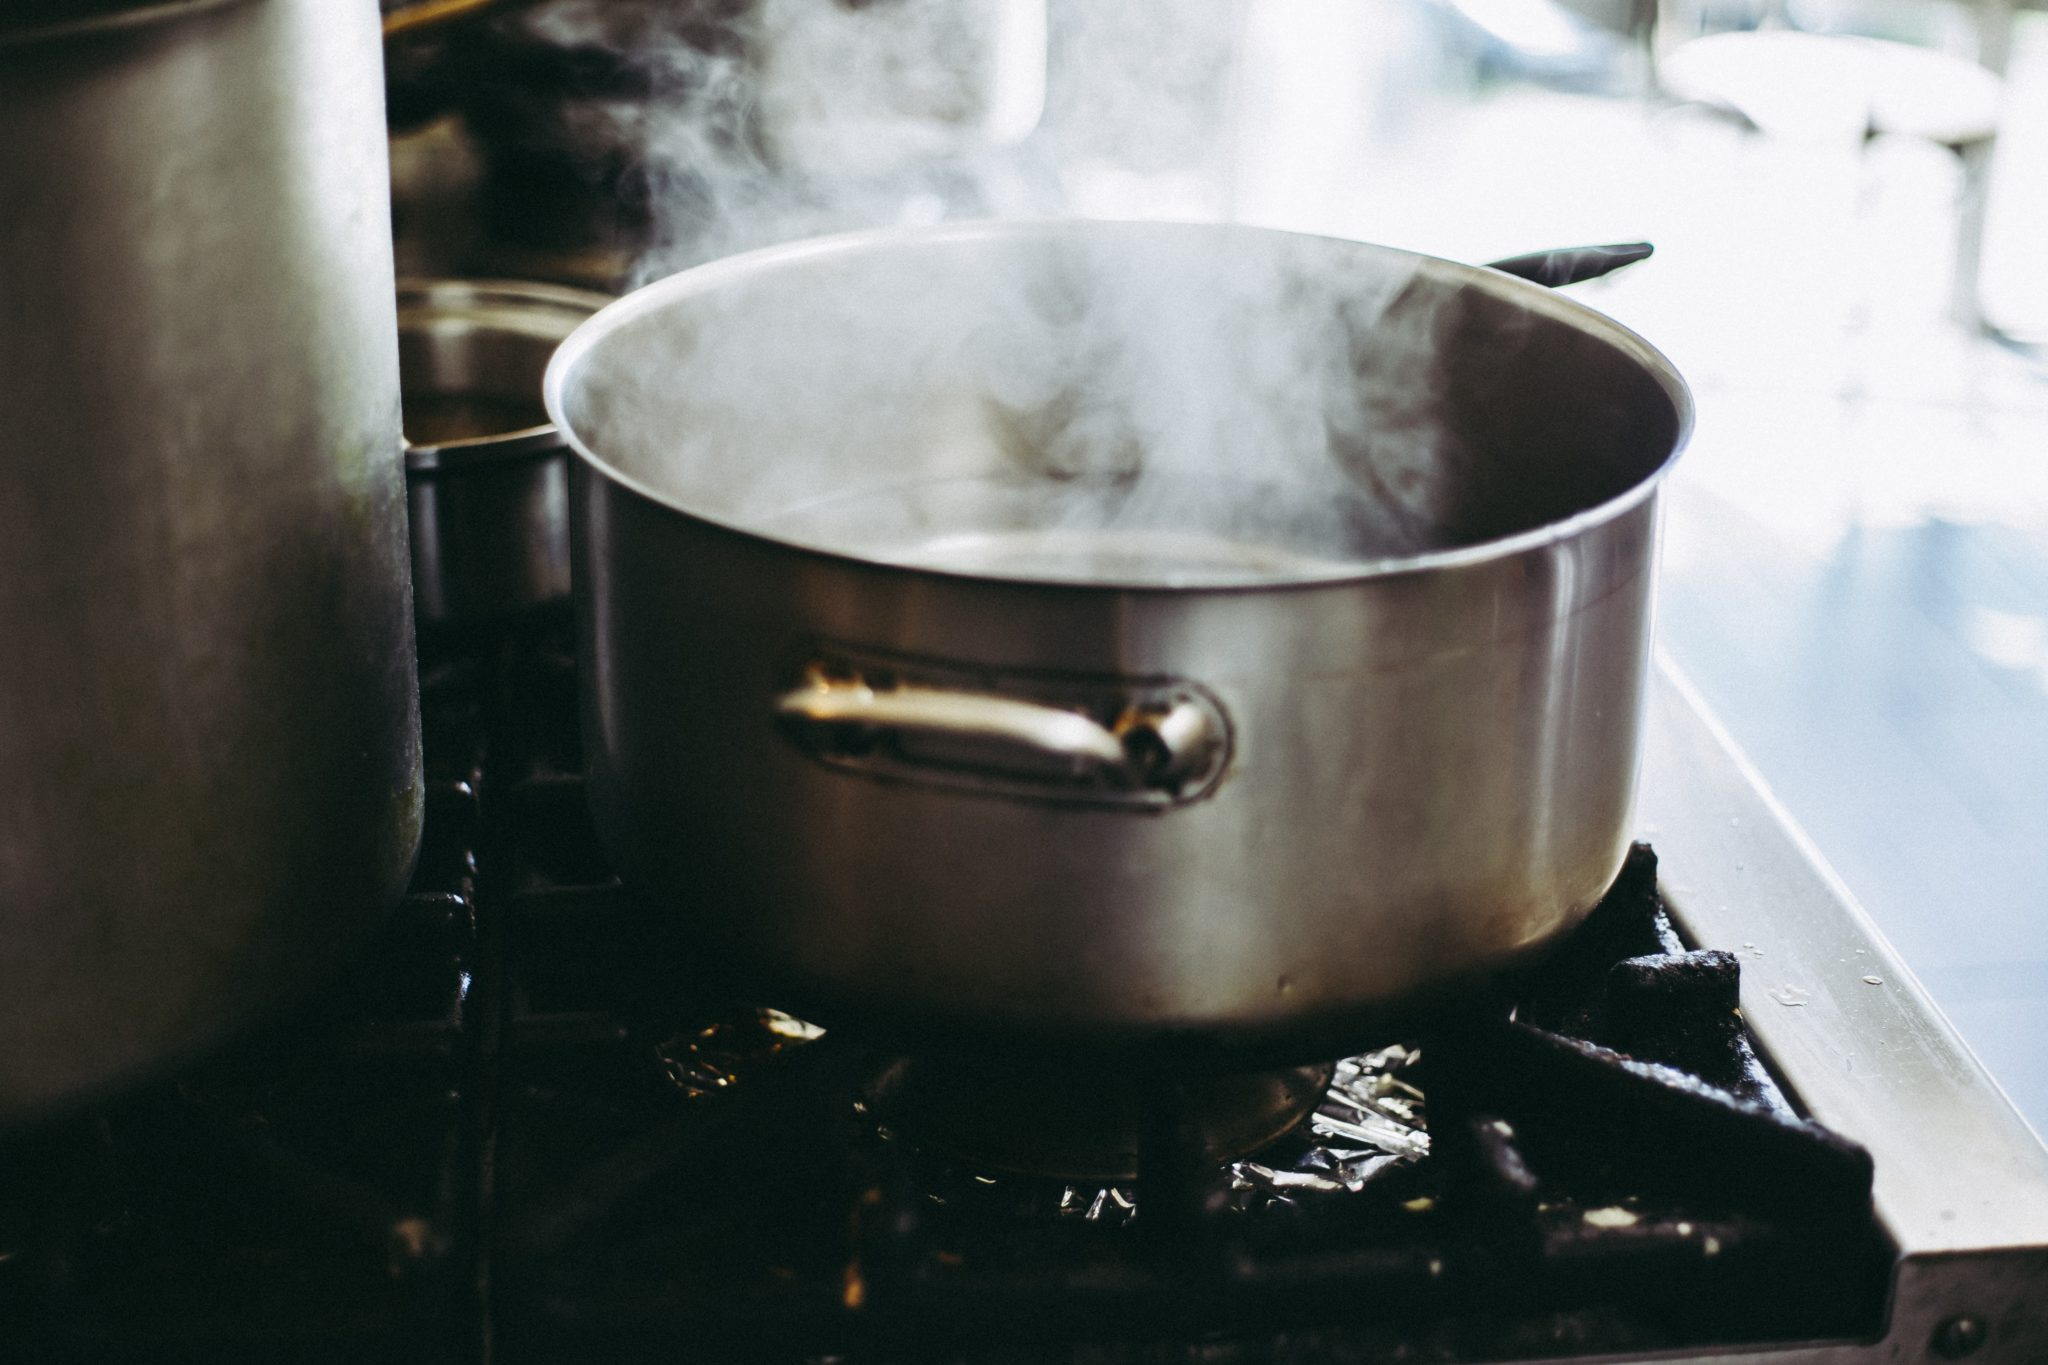 image of a large silver pot on a stove with steam coming out